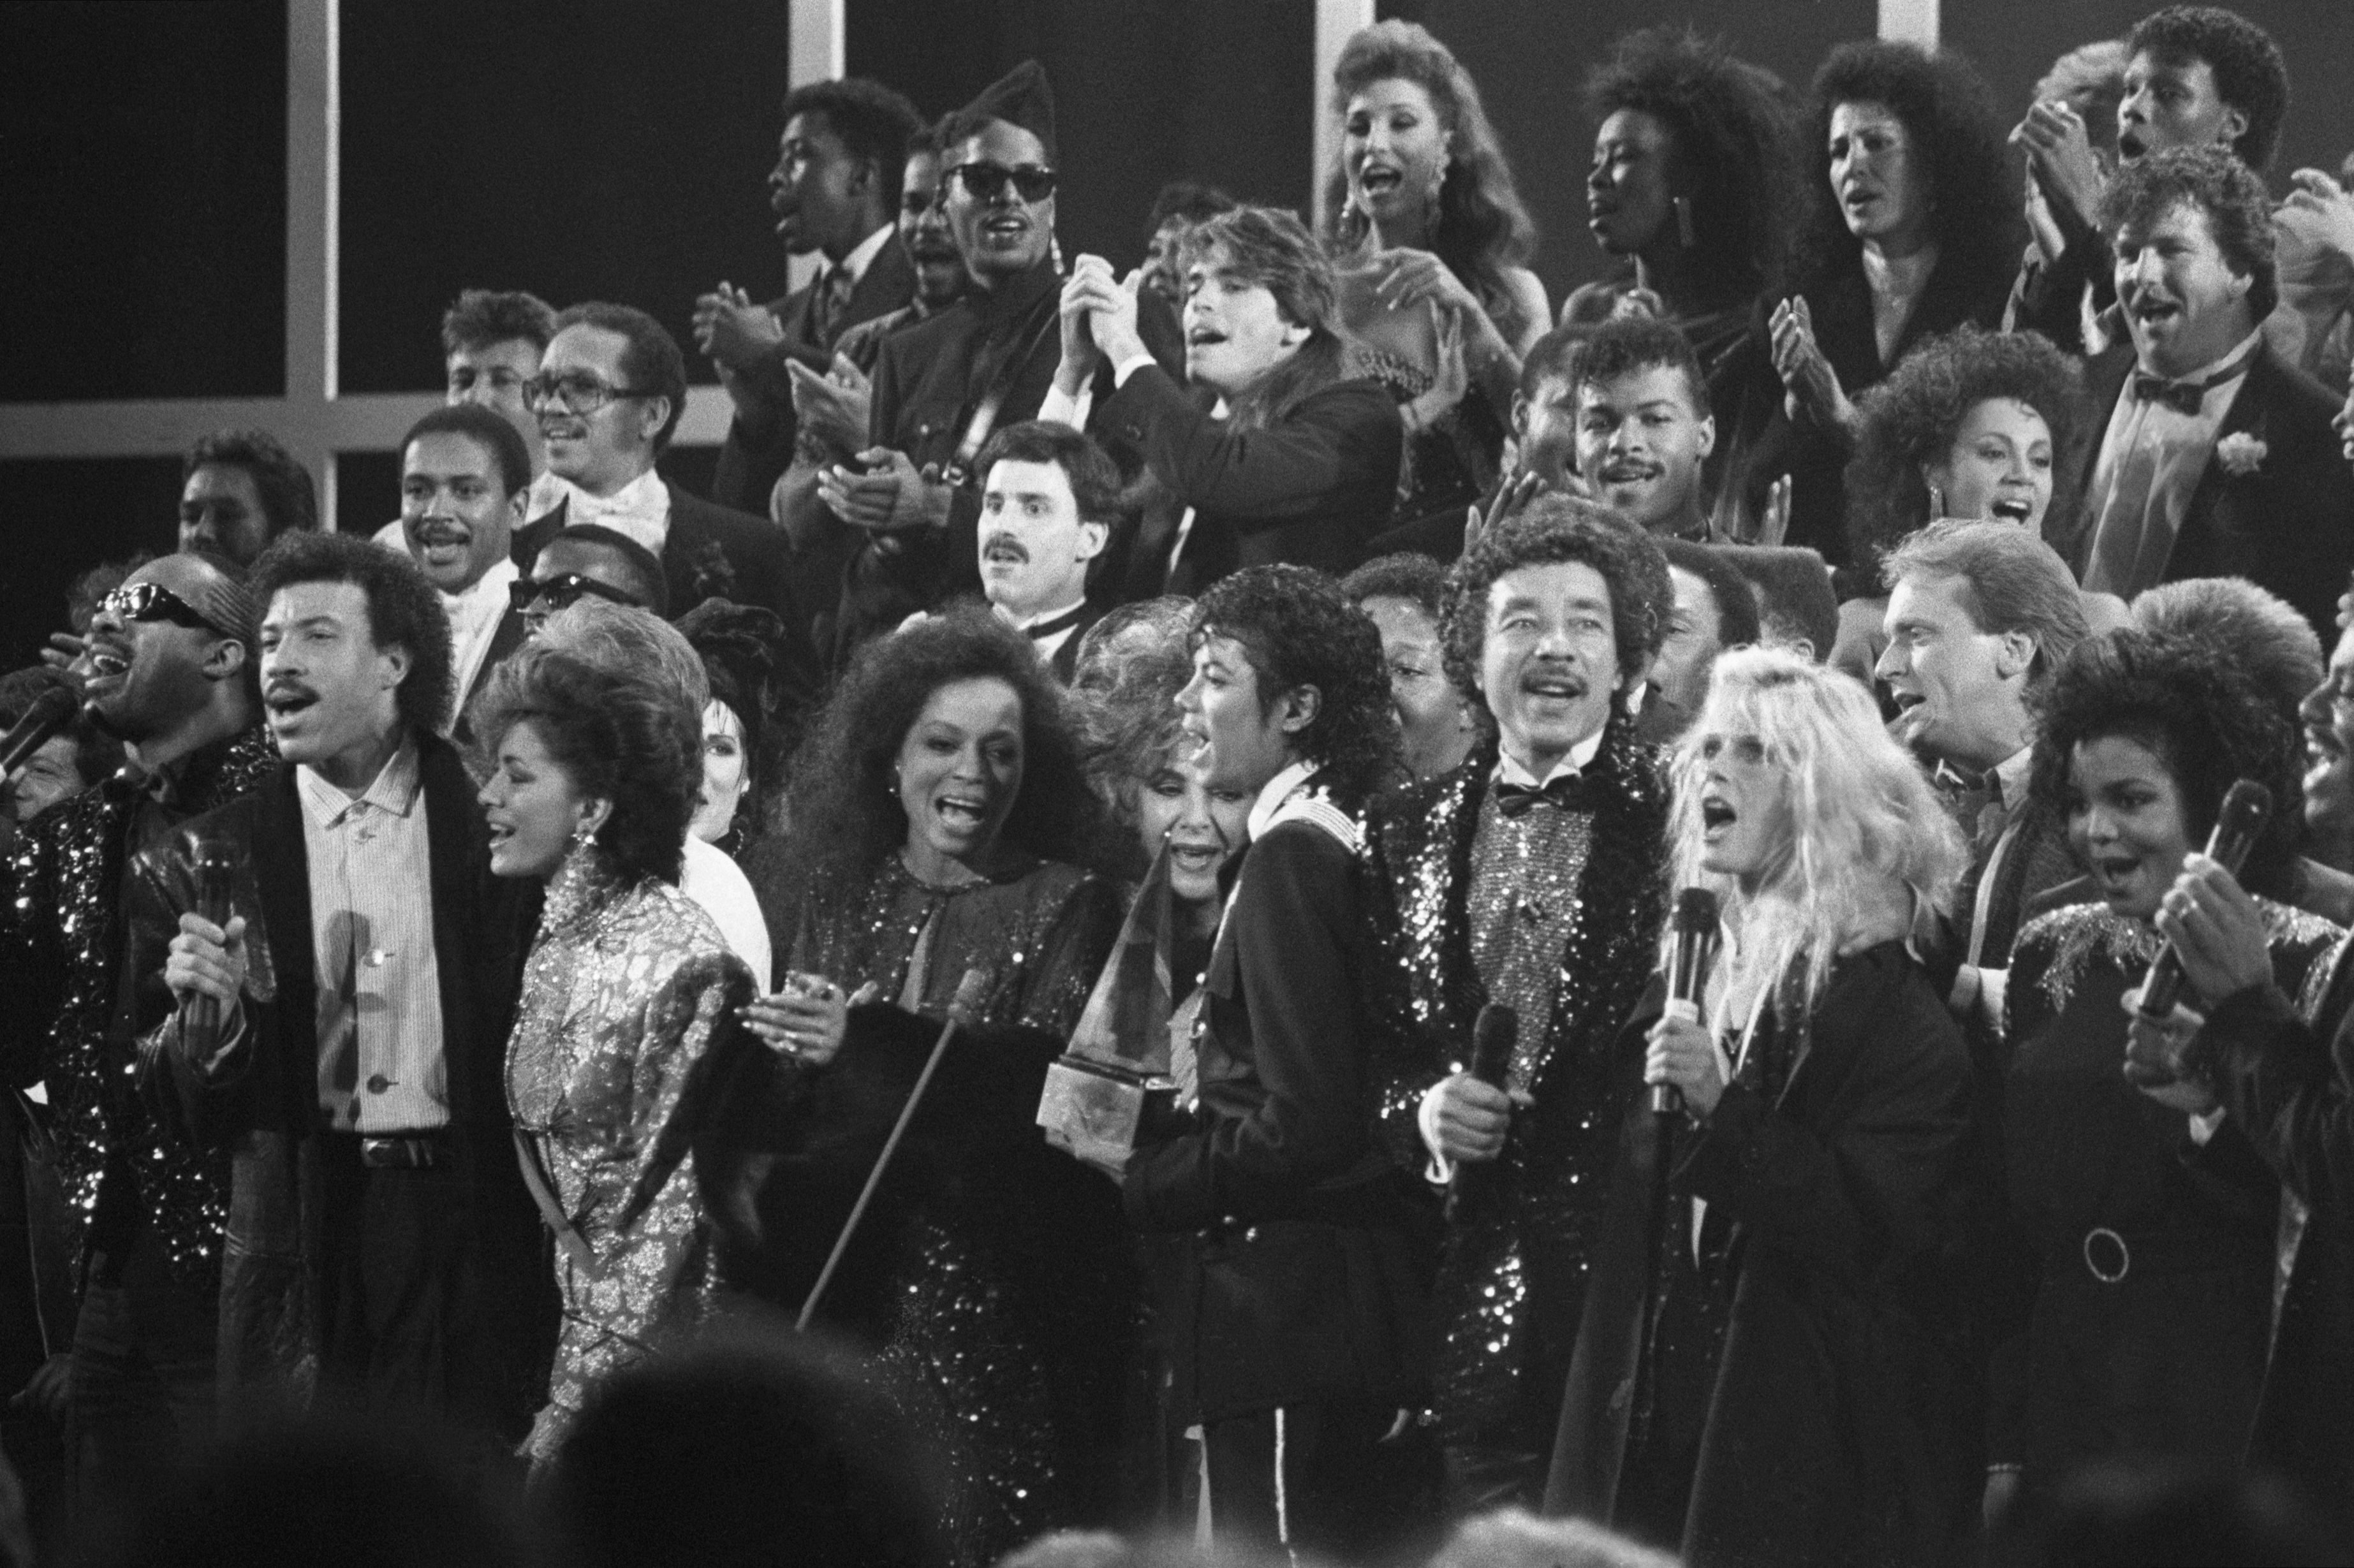 """A variety of music and movie stars sing """"We Are The World"""" a song written to benefit famine victims in Ethiopia. Across the front row stands: Stevie Wonder, Lionel Richie, Sheila E., Diana Ross, Elizabeth Taylor, Michael Jackson, Smokey Robinson, Kim Carnes, Michael Douglas, and Janet Jackson at the show held in 1986."""